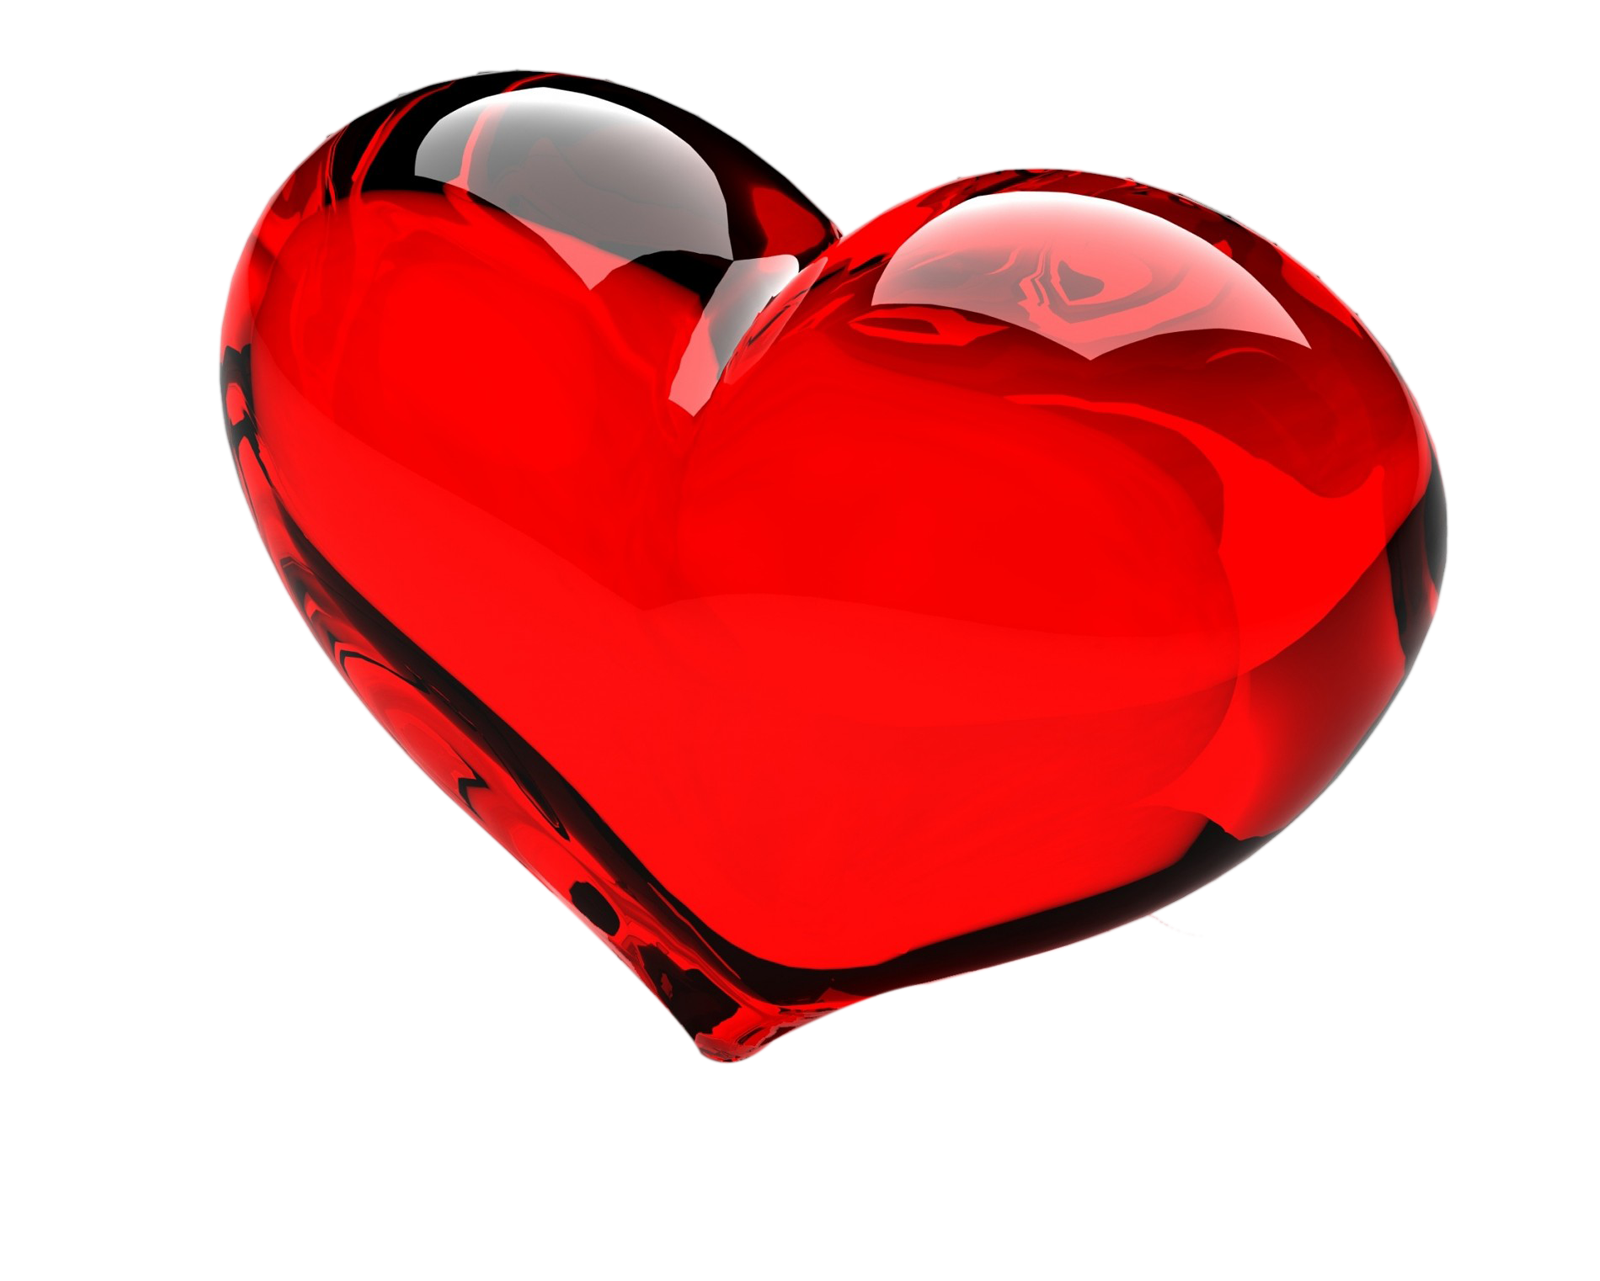 banner royalty free stock Sidewalk background clipart. Png x love heart